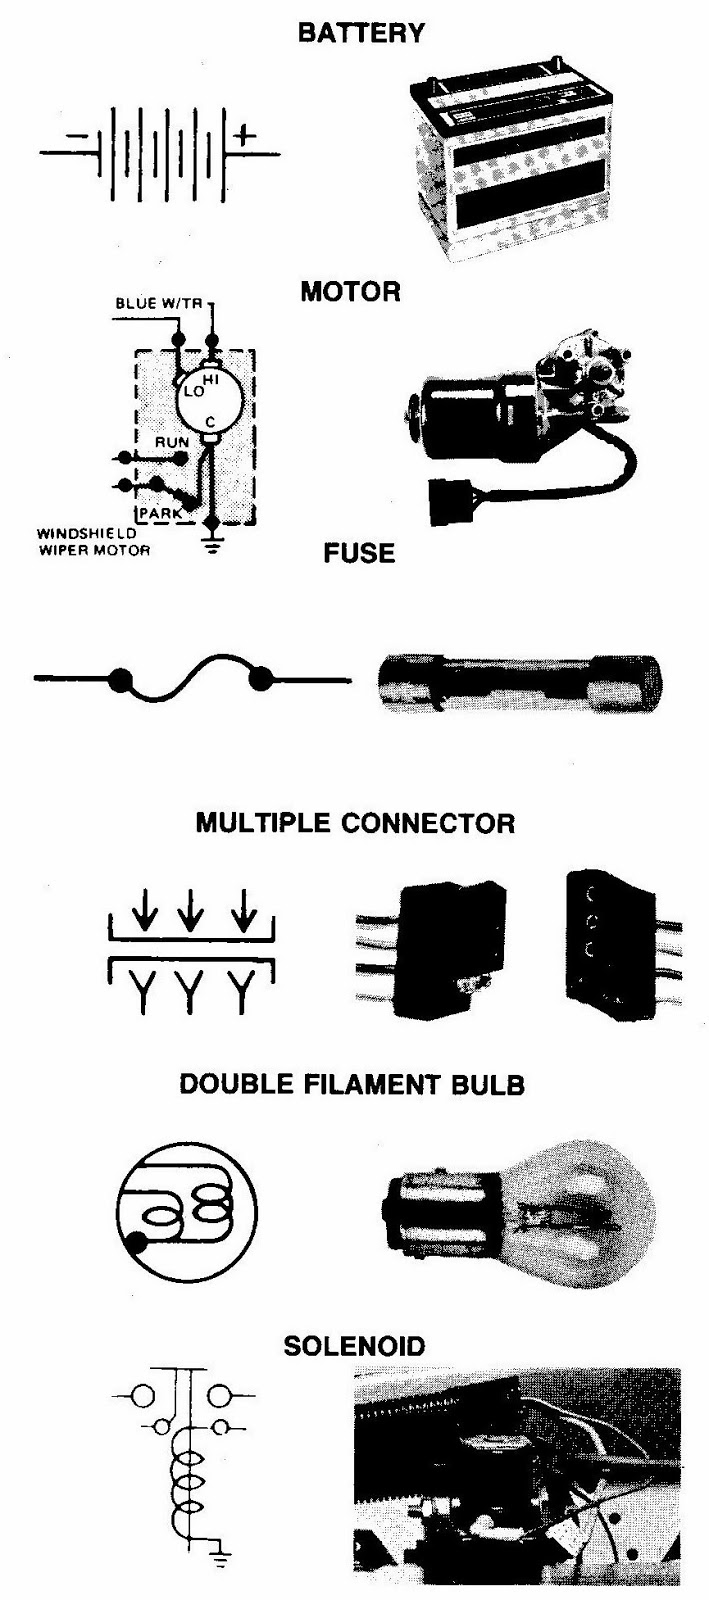 small resolution of automotive diagram symbols and the actual hardware that they represent